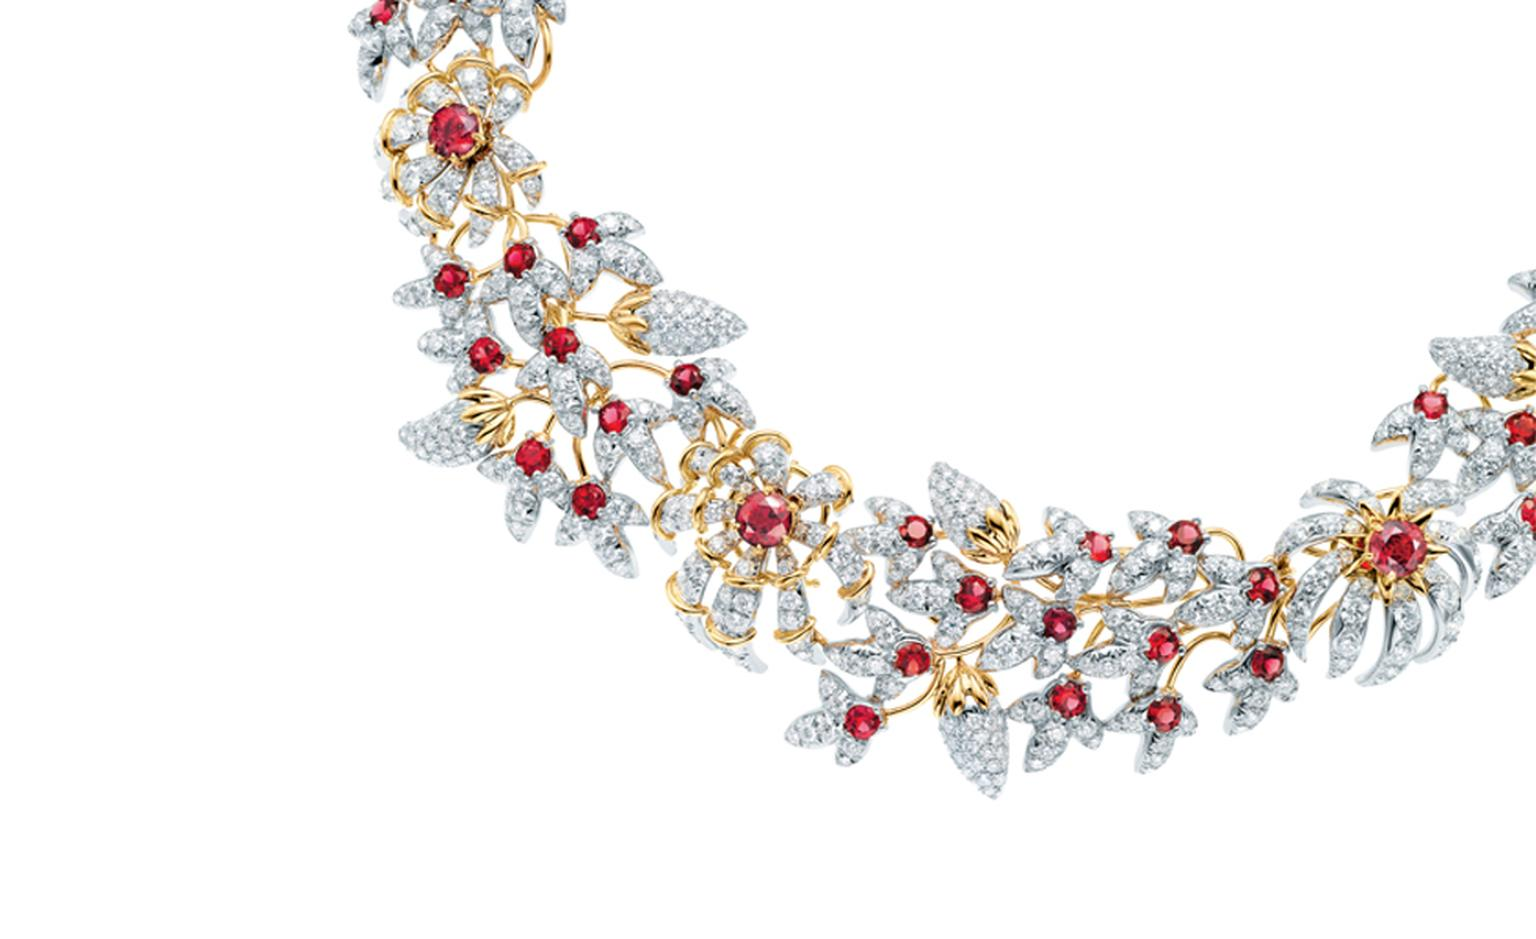 TIFFANY, Jean Schlumberger Conique Necklace. Price from $205,000